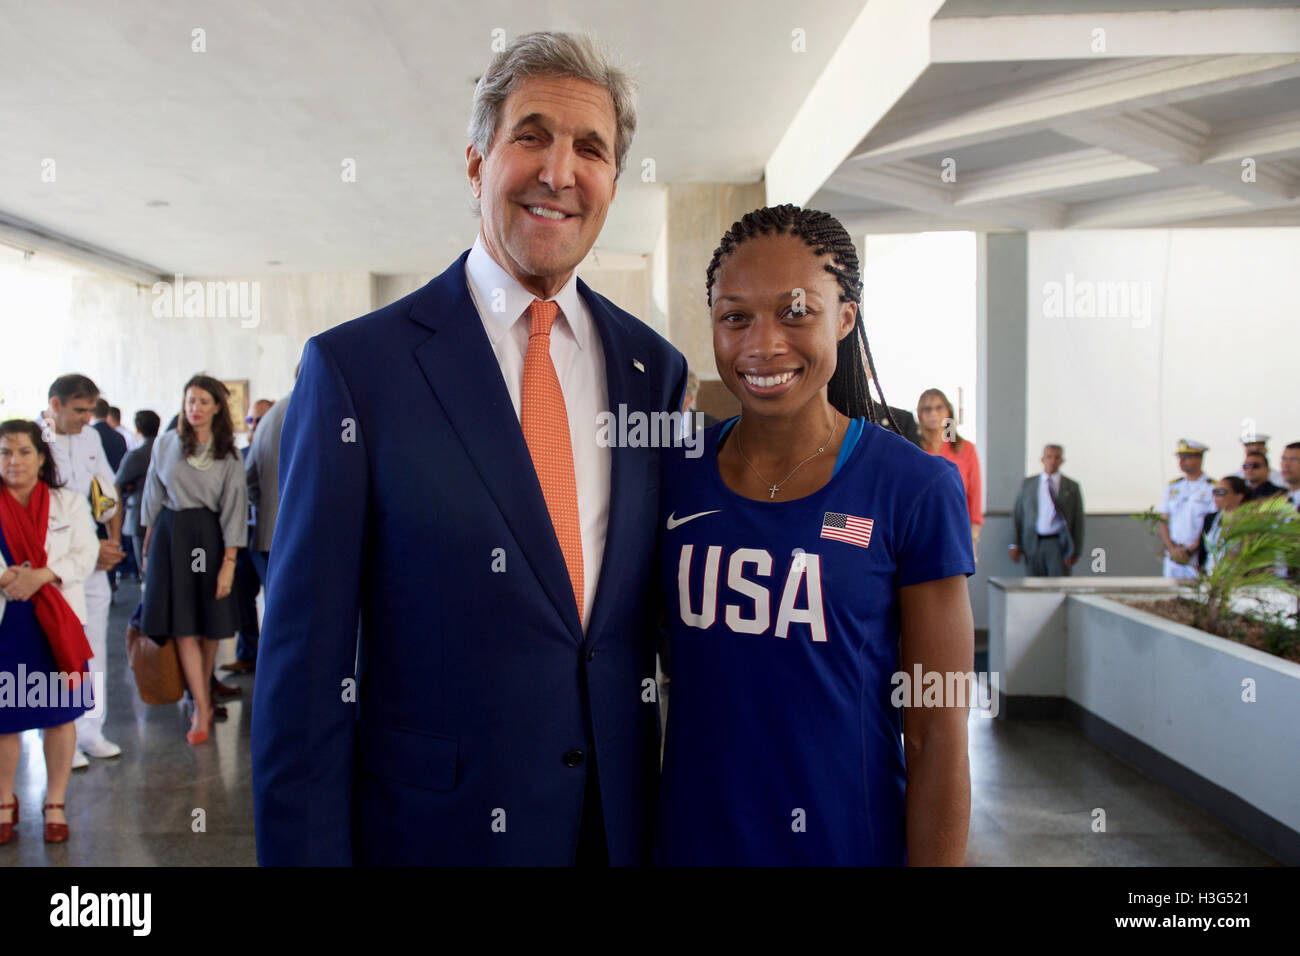 U.S. Secretary of State John Kerry poses for a photo with Olympic gold medalist and track star Allyson Felix as - Stock Image